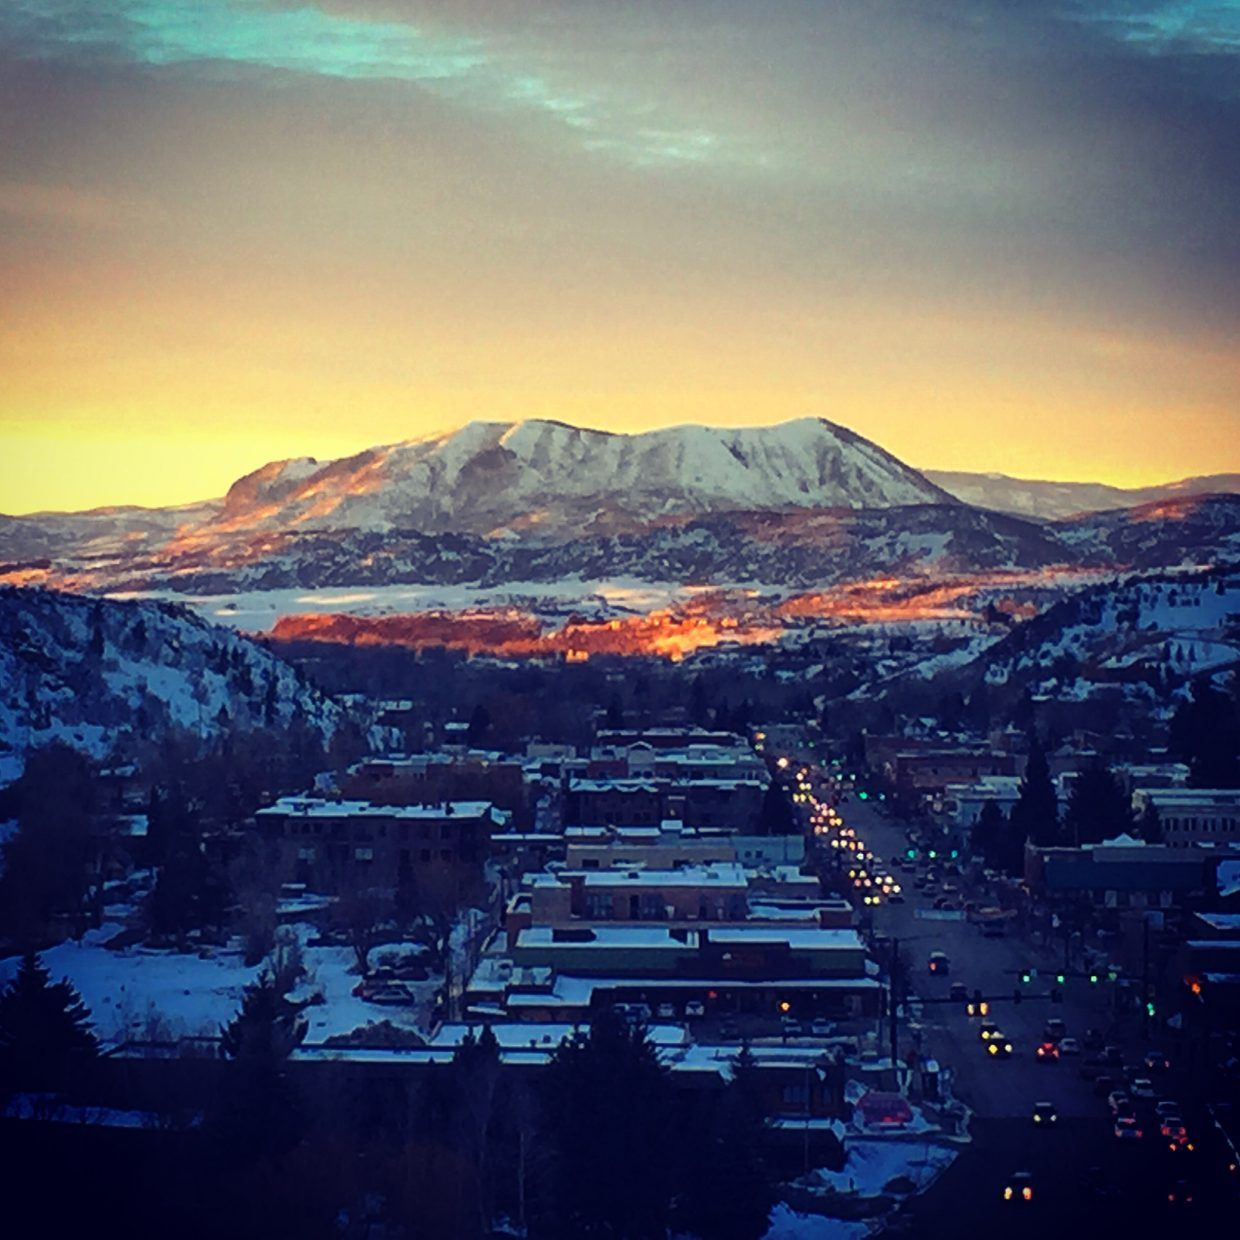 Sleeping Giant at sunset. Photo submitted by: Jessica Scroble.